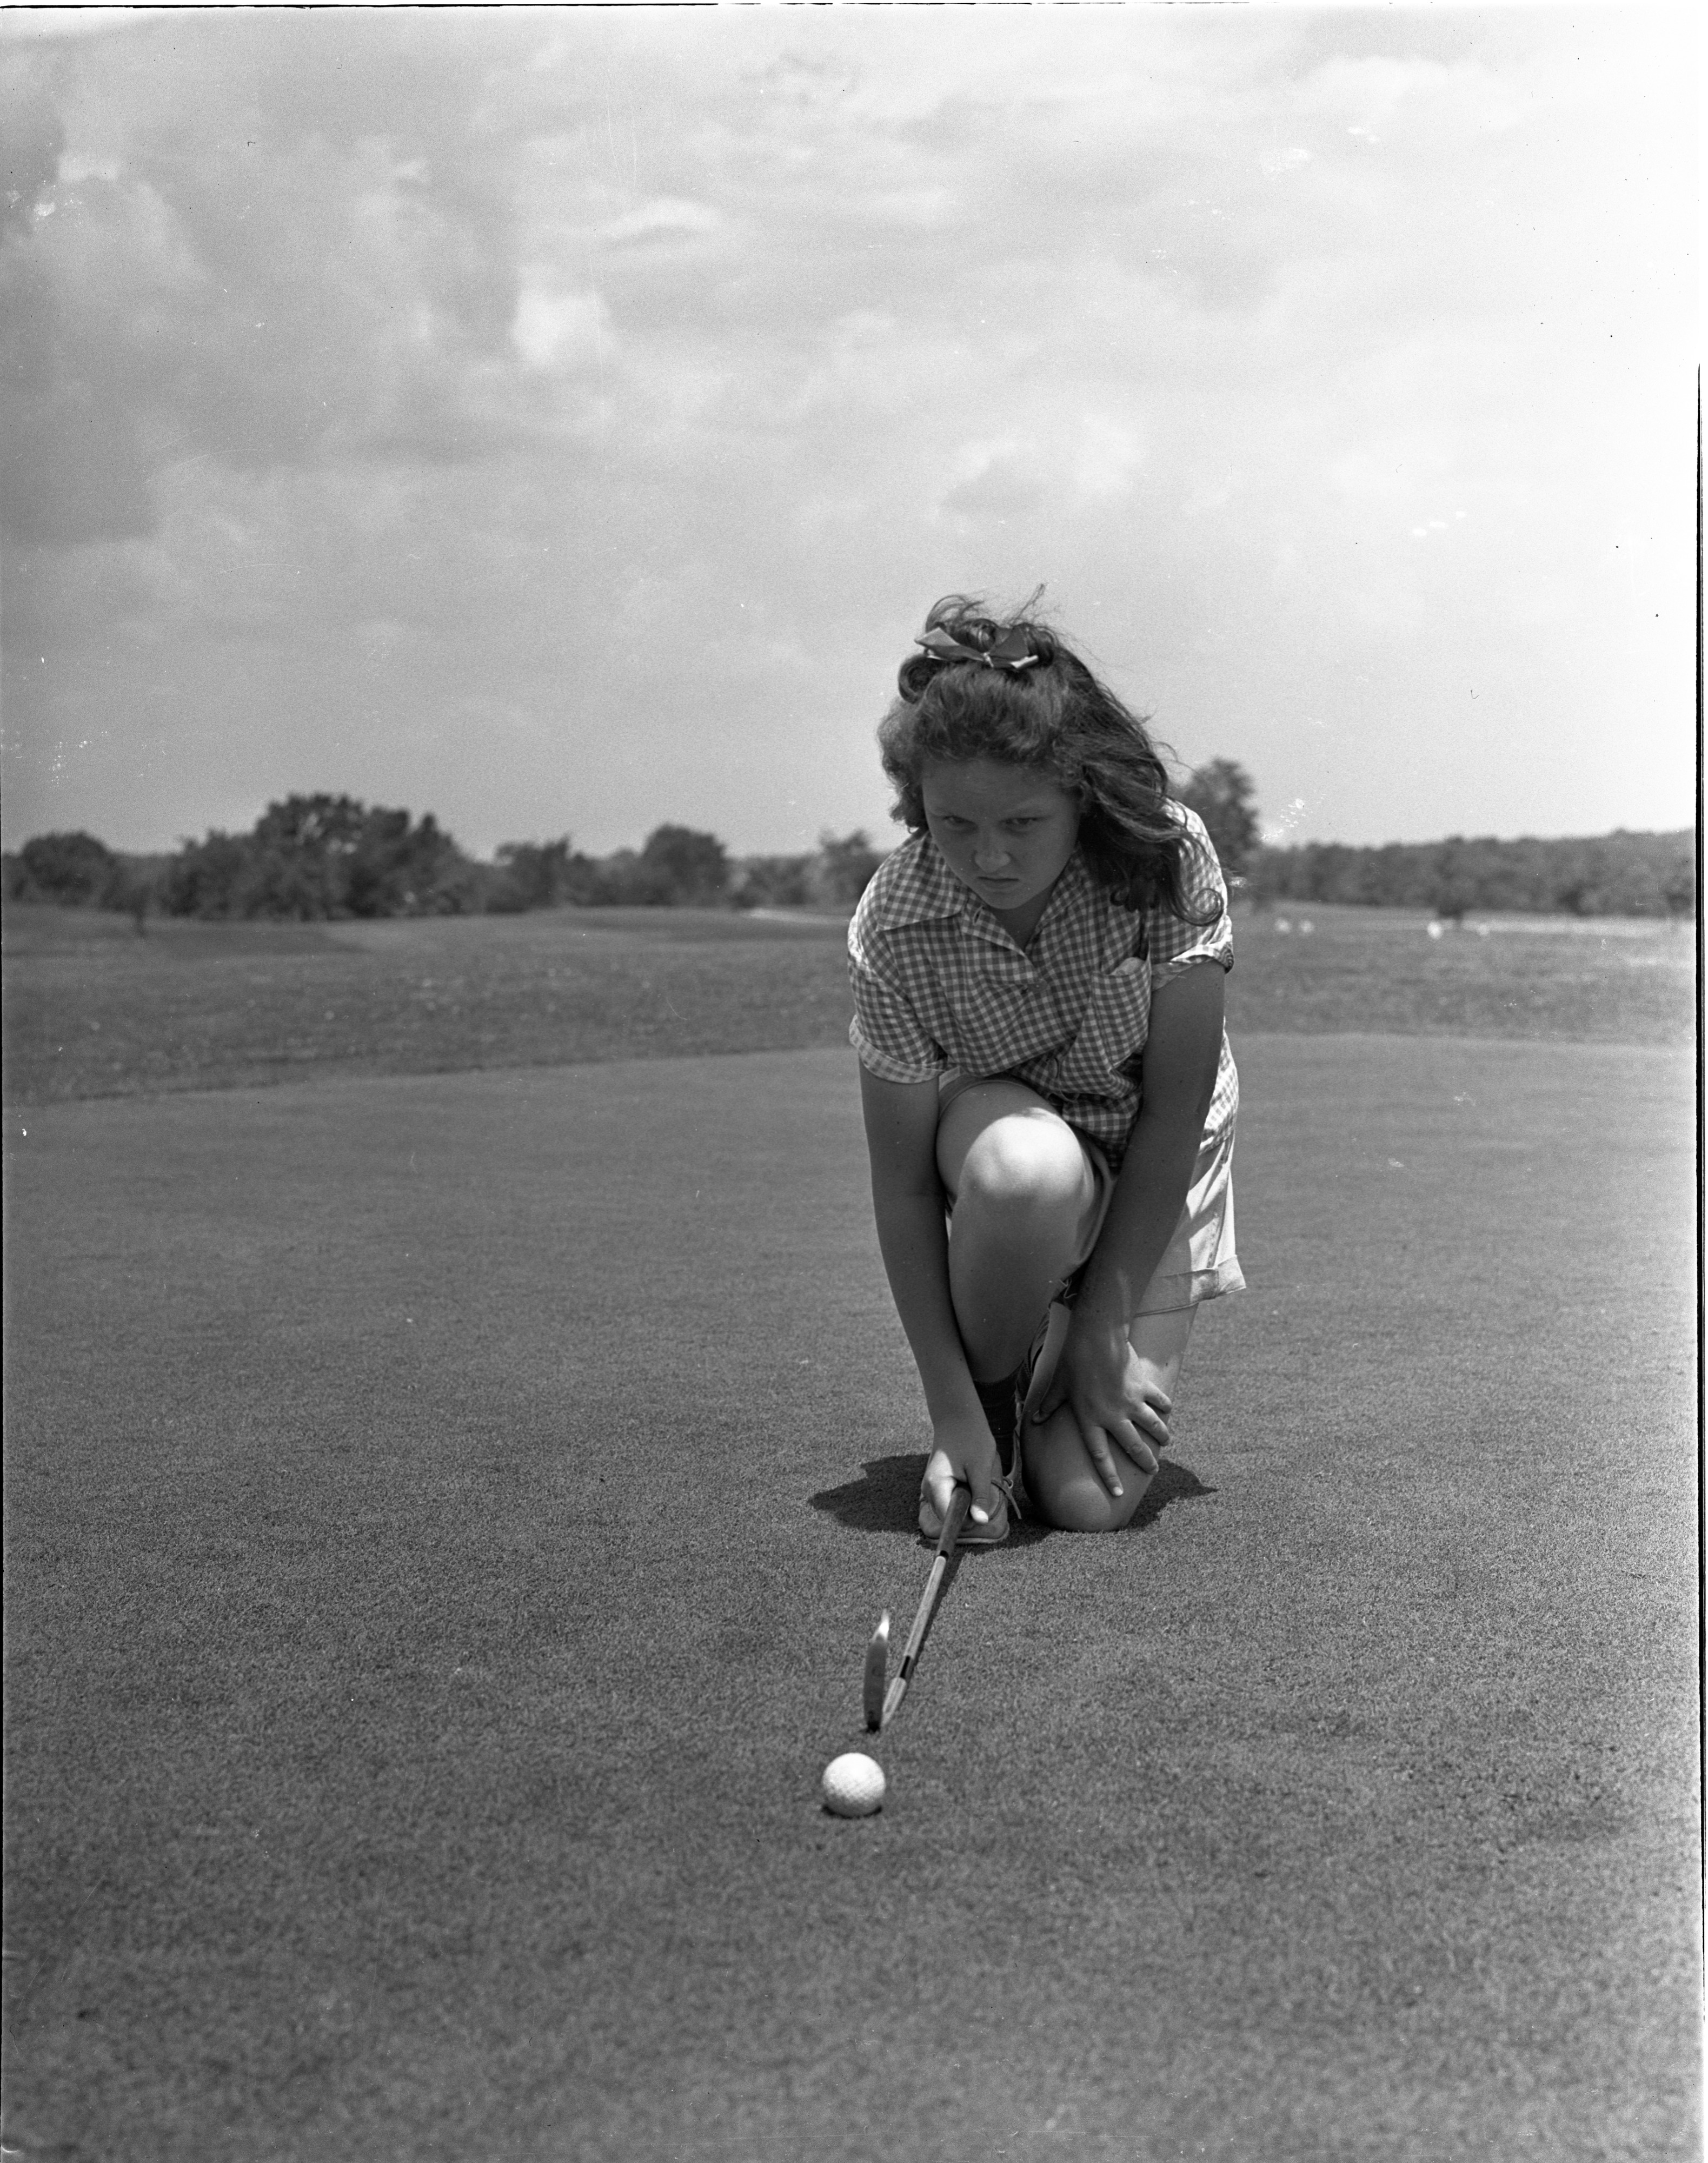 Angela Dobson Lines Up A Putt In The Women's City Golf Tournament Qualifying Rounds At Barton Hills, July 1939 image